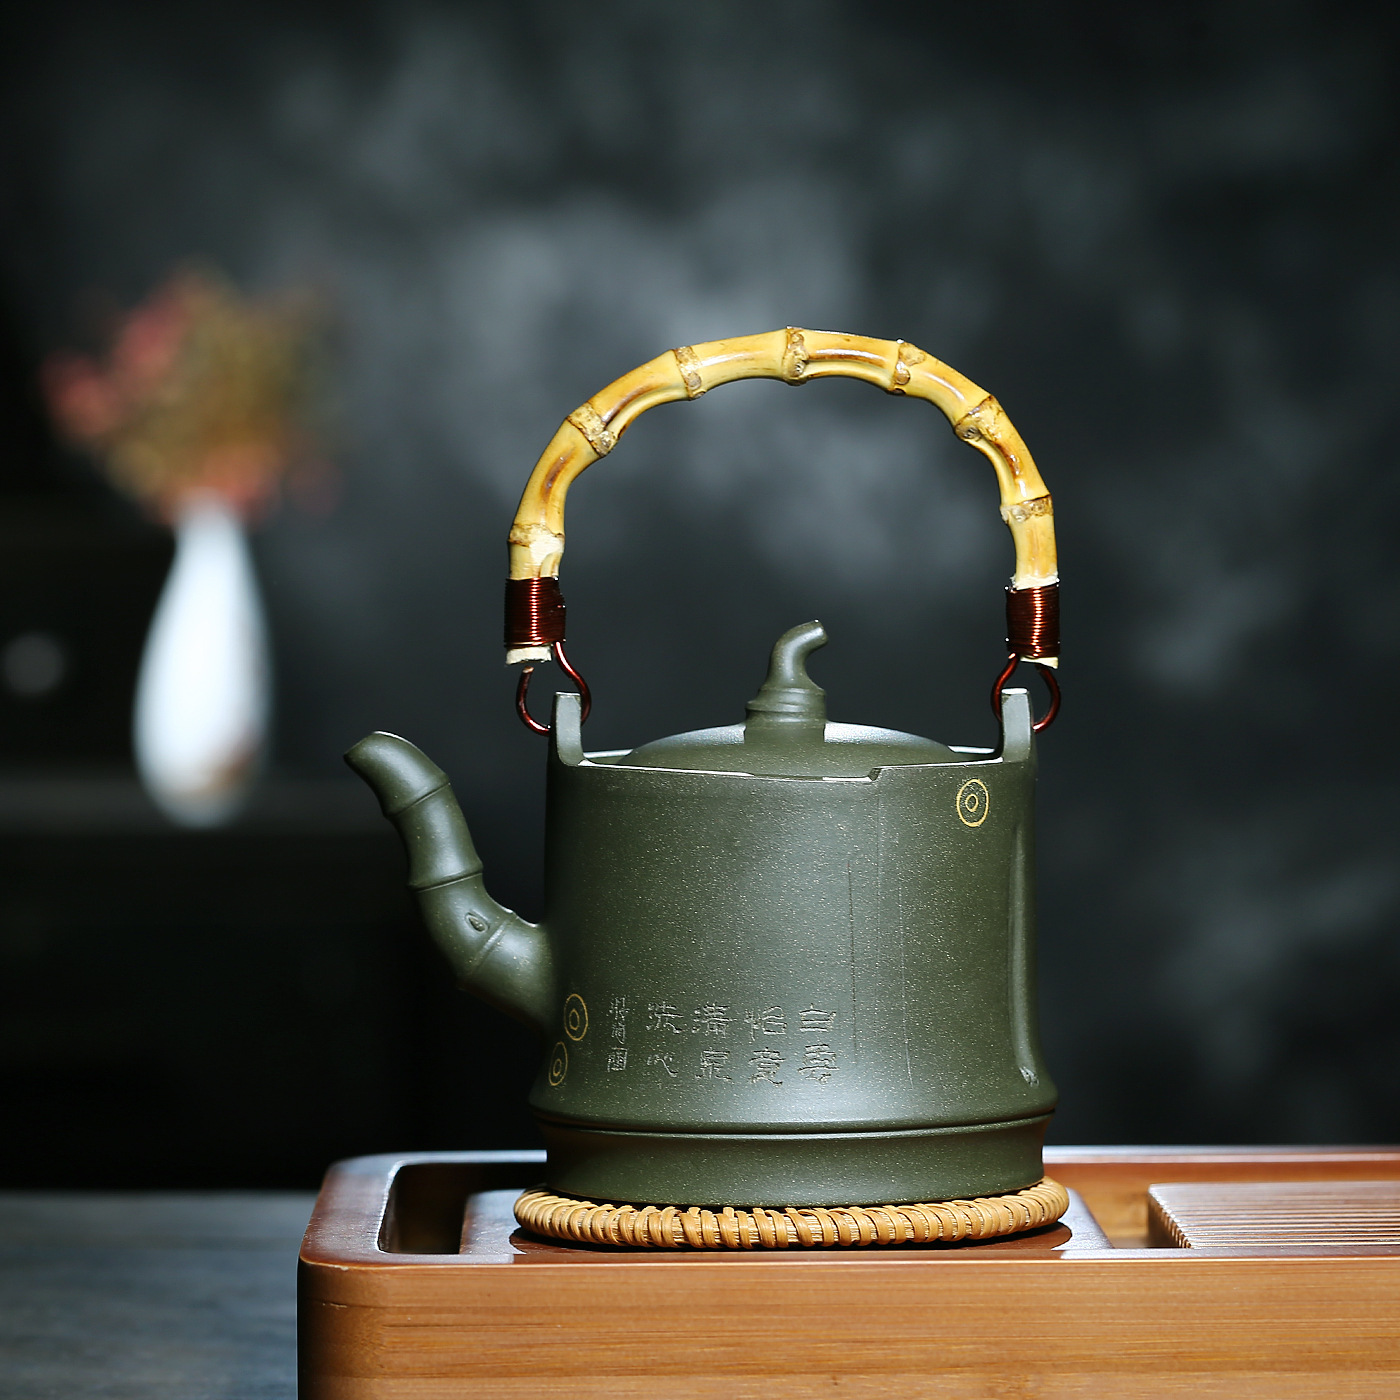 Full Manual One Leaf Bamboo Handle The Republic Of China Green Famous Shao Li Ping Kungfu Online Teapot Tea Set WholesaleFull Manual One Leaf Bamboo Handle The Republic Of China Green Famous Shao Li Ping Kungfu Online Teapot Tea Set Wholesale